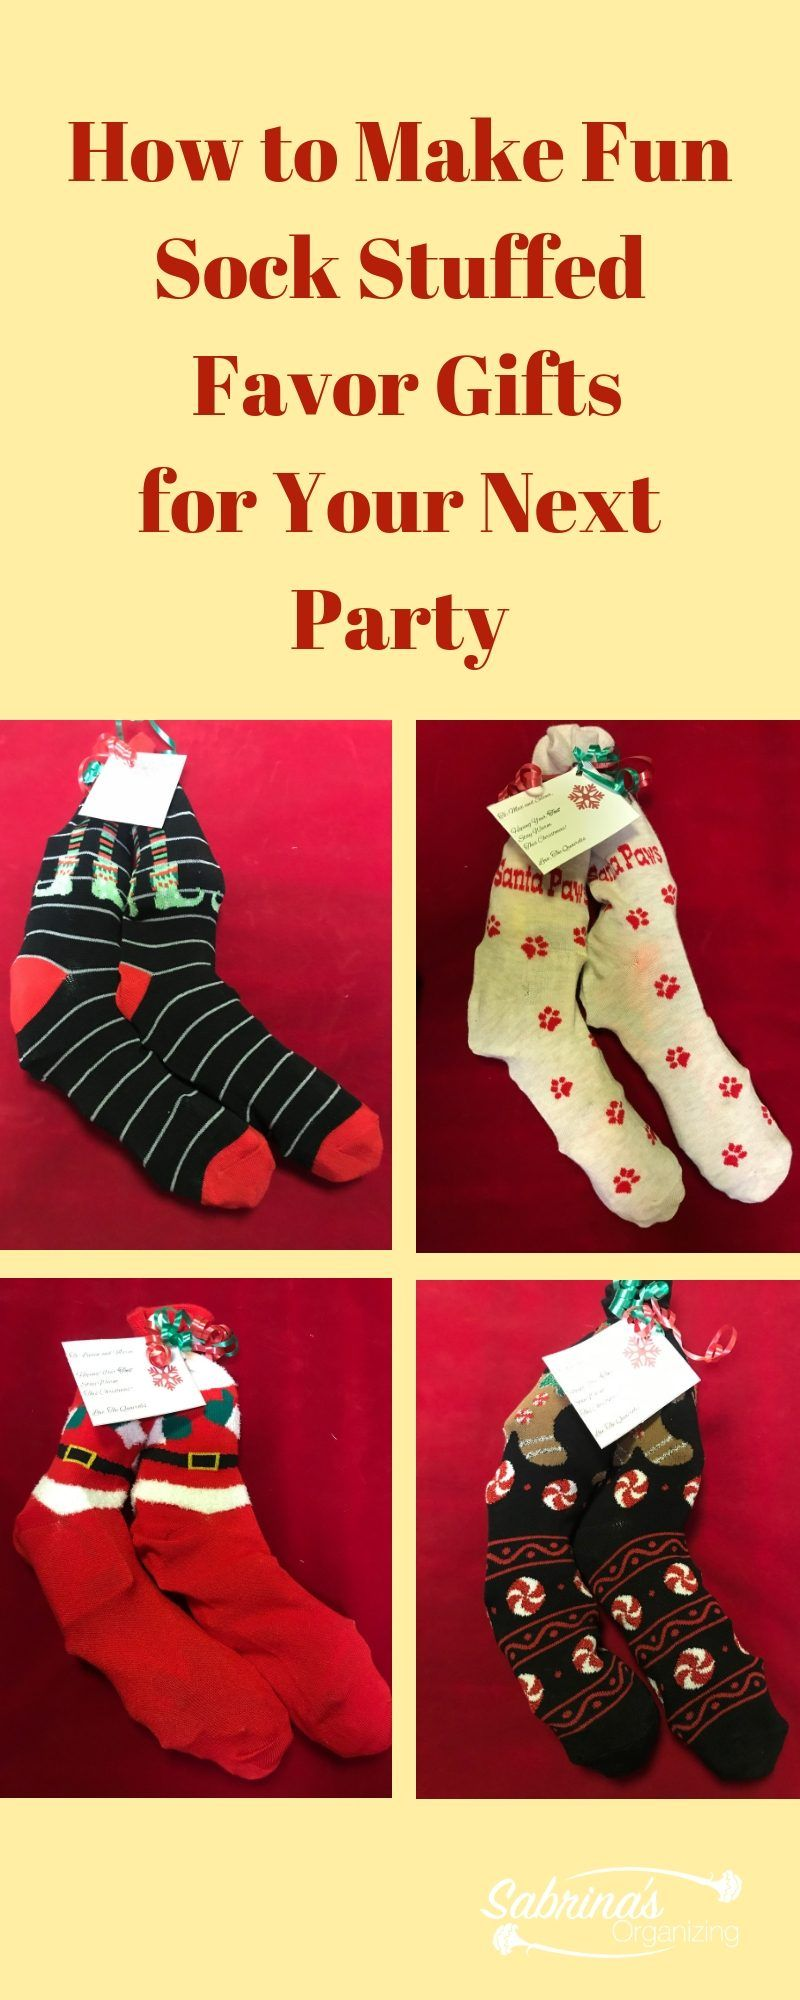 How To Make Fun Sock Stuffed Favor Gifts For Your Next Party Christmas Gifts For Boys Christmas Socks Gift Christmas Party Favors Diy